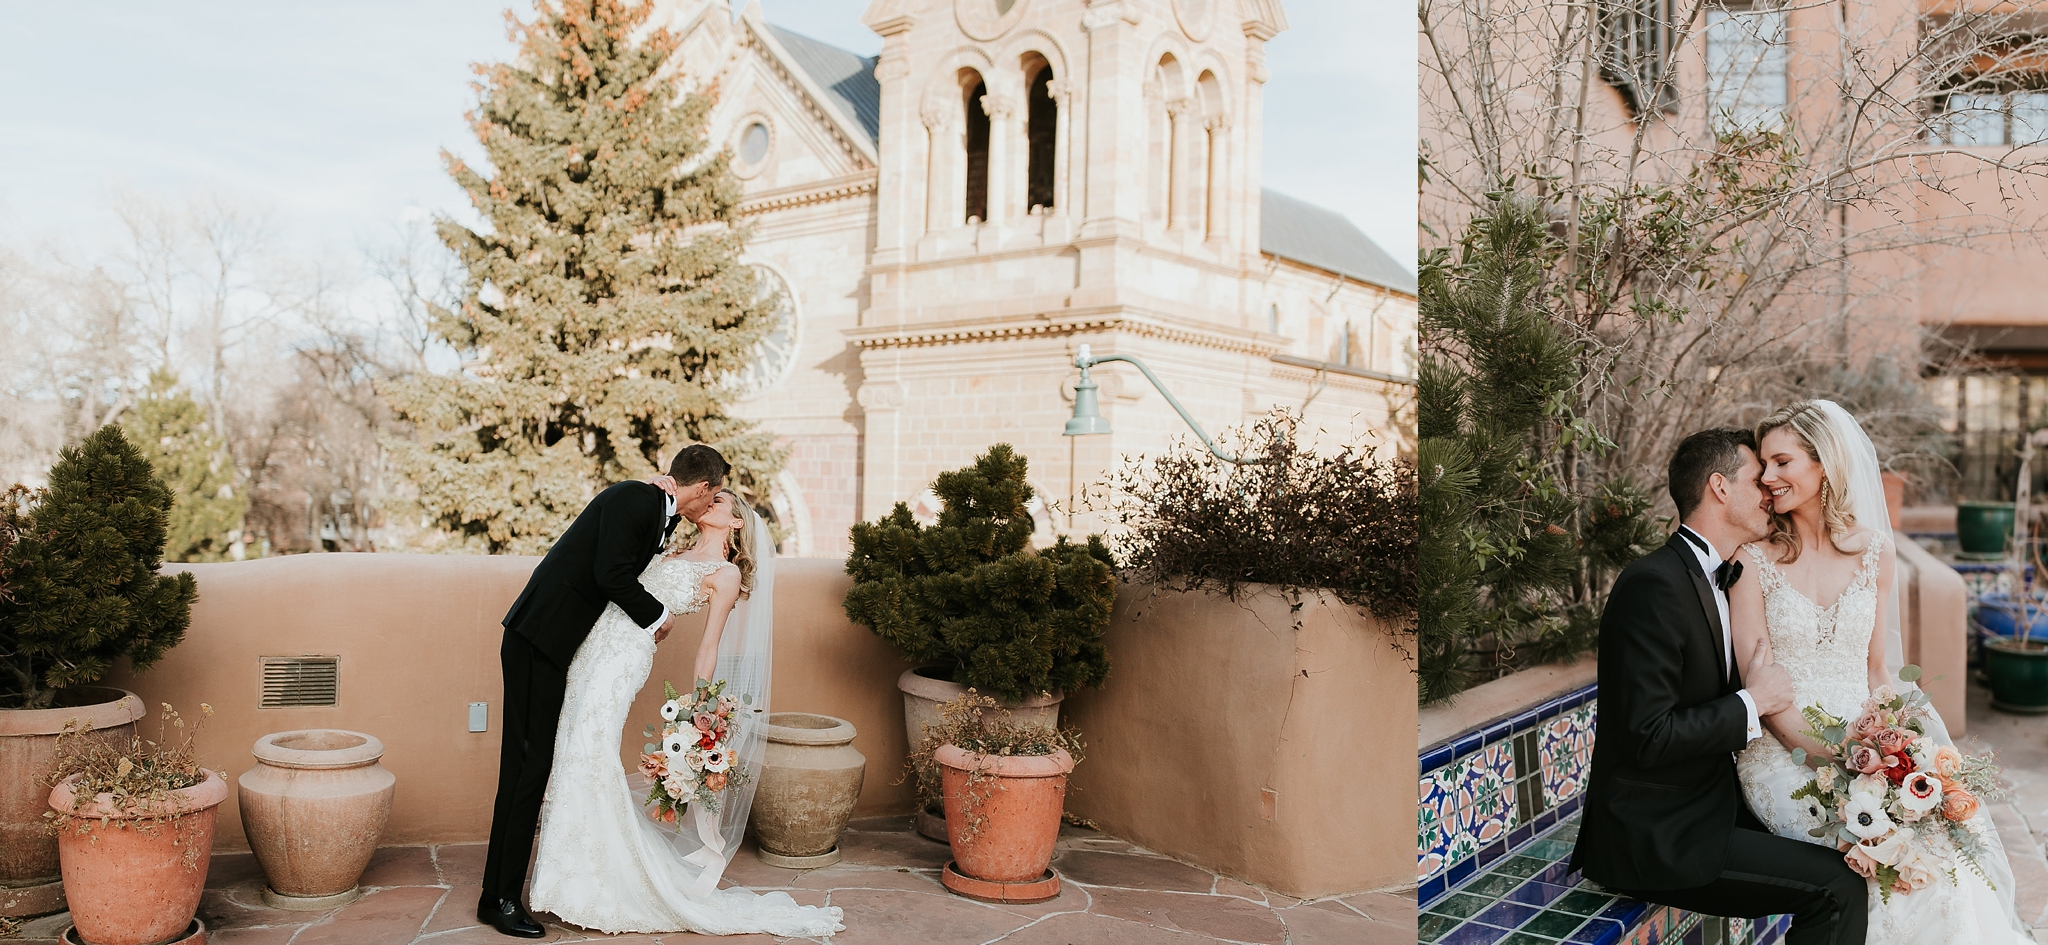 Alicia+lucia+photography+-+albuquerque+wedding+photographer+-+santa+fe+wedding+photography+-+new+mexico+wedding+photographer+-+new+mexico+wedding+-+engagement+-+santa+fe+wedding+-+la+fonda+on+the+plaza+-+la+fonda+wedding_0063.jpg